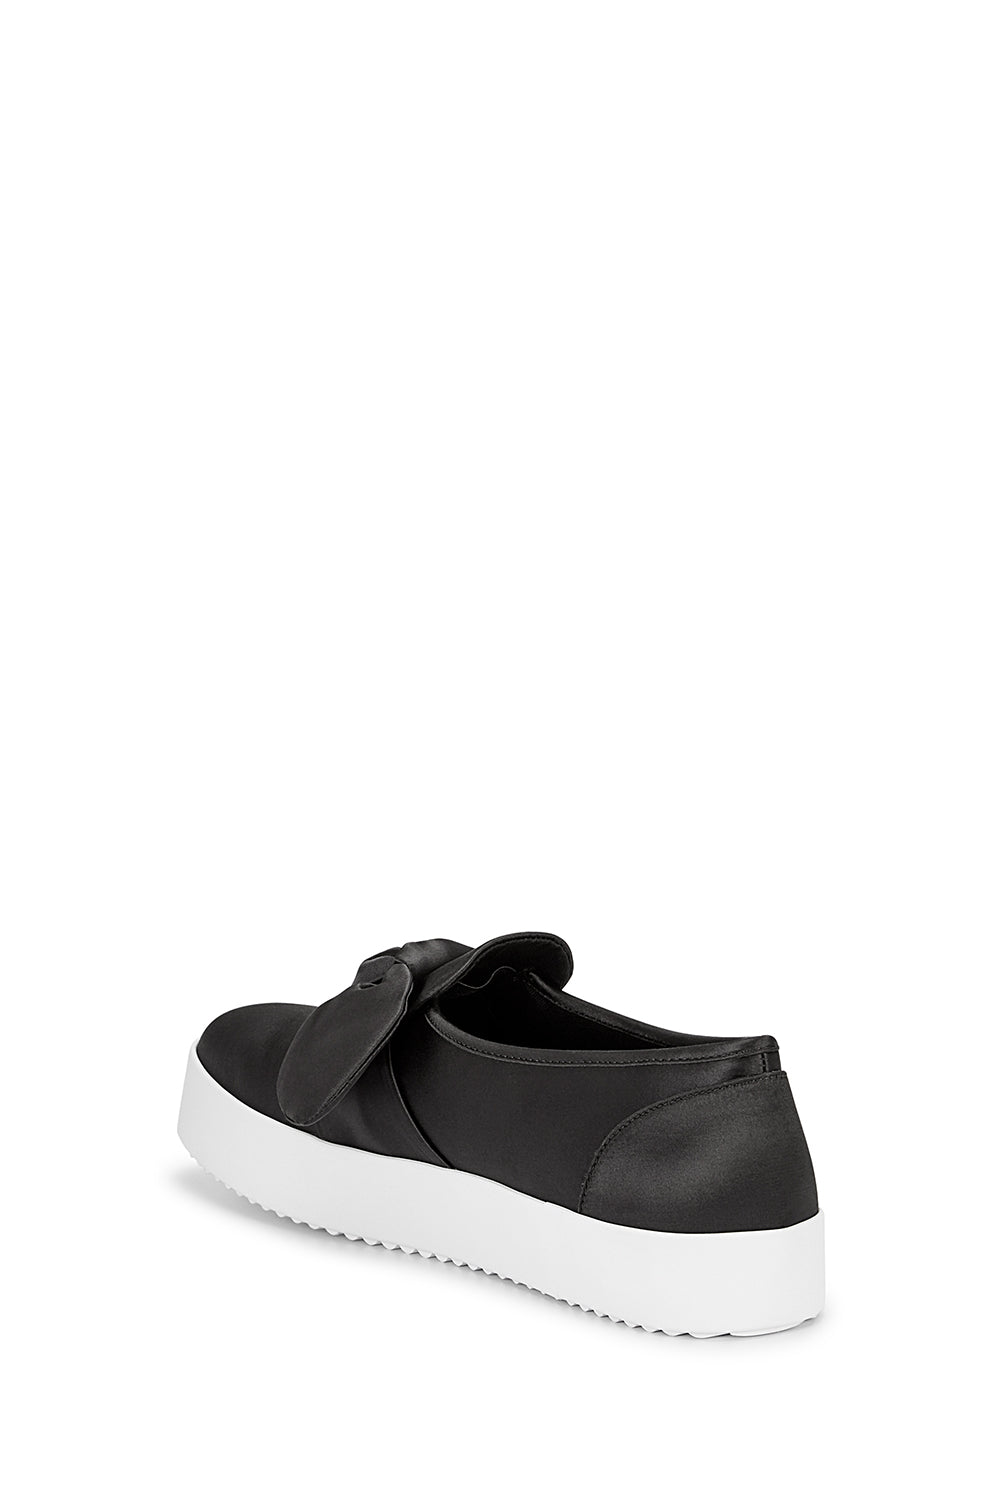 Stacey Sneaker